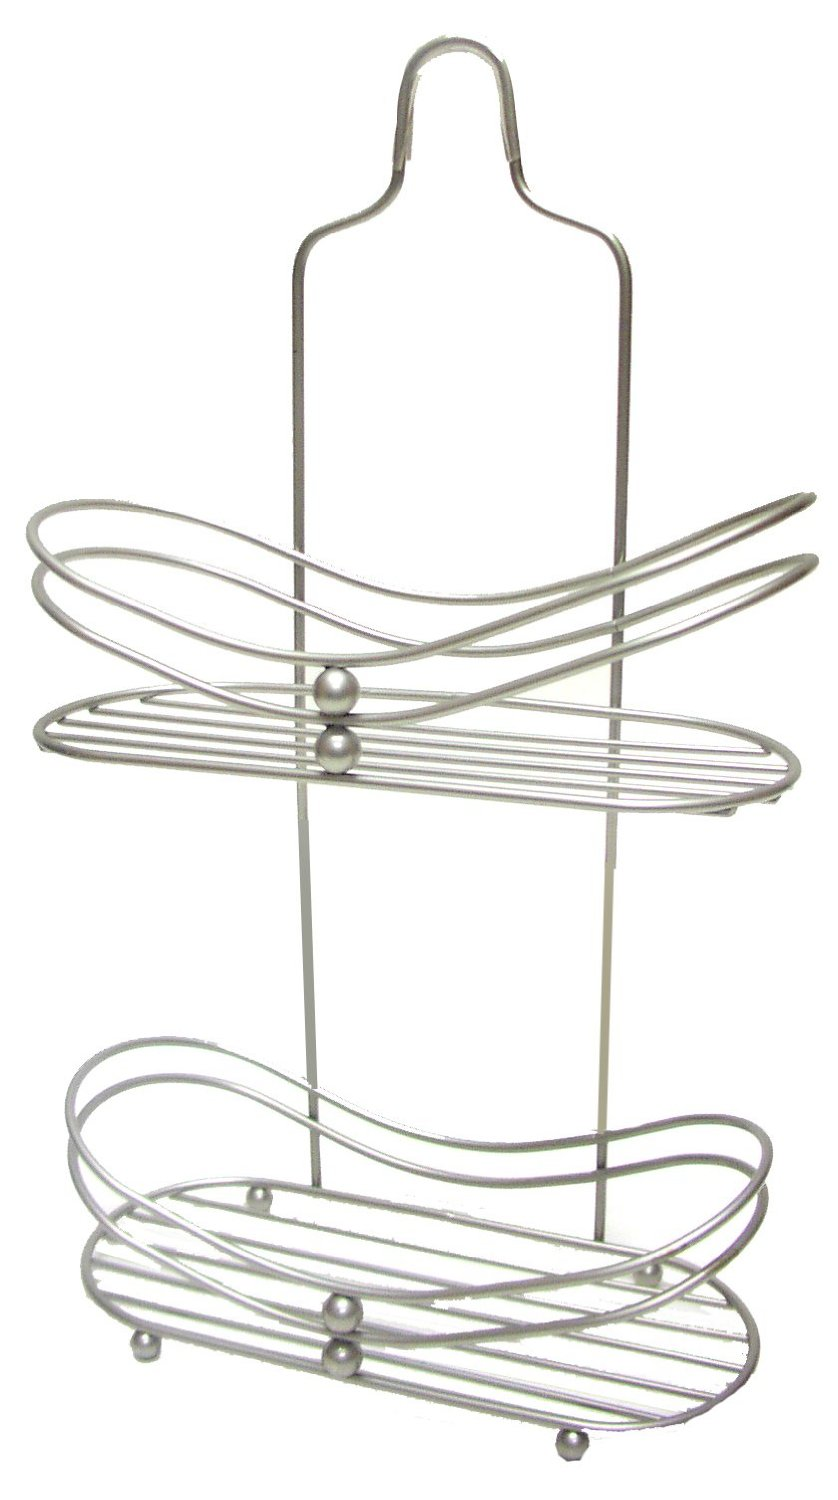 Use a shower caddy with a flat bottom as narrow shelving in small cabinets